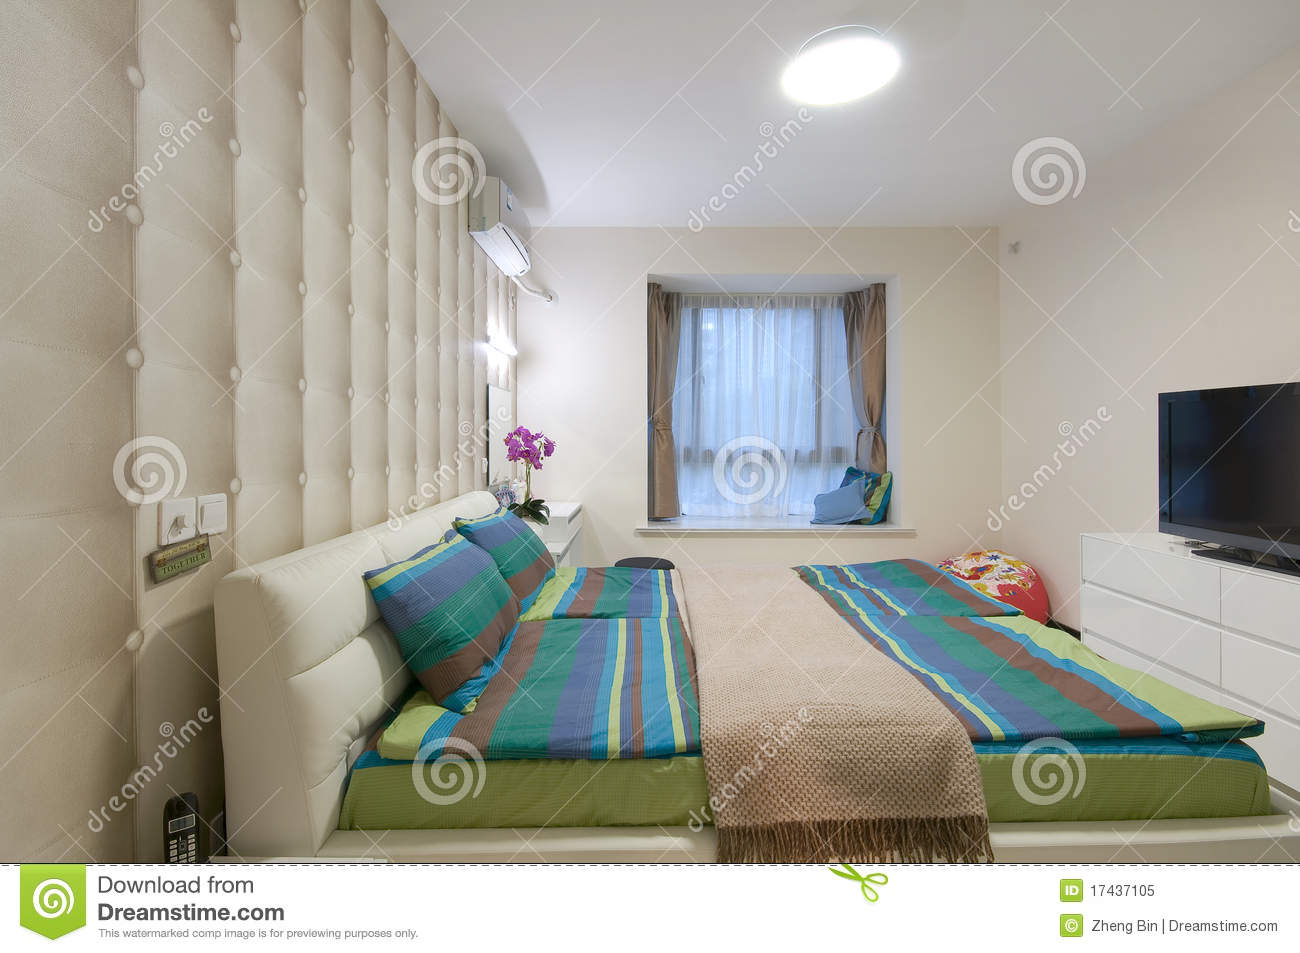 Bedroom royalty free stock photo image 17437105 - Image bed room ...